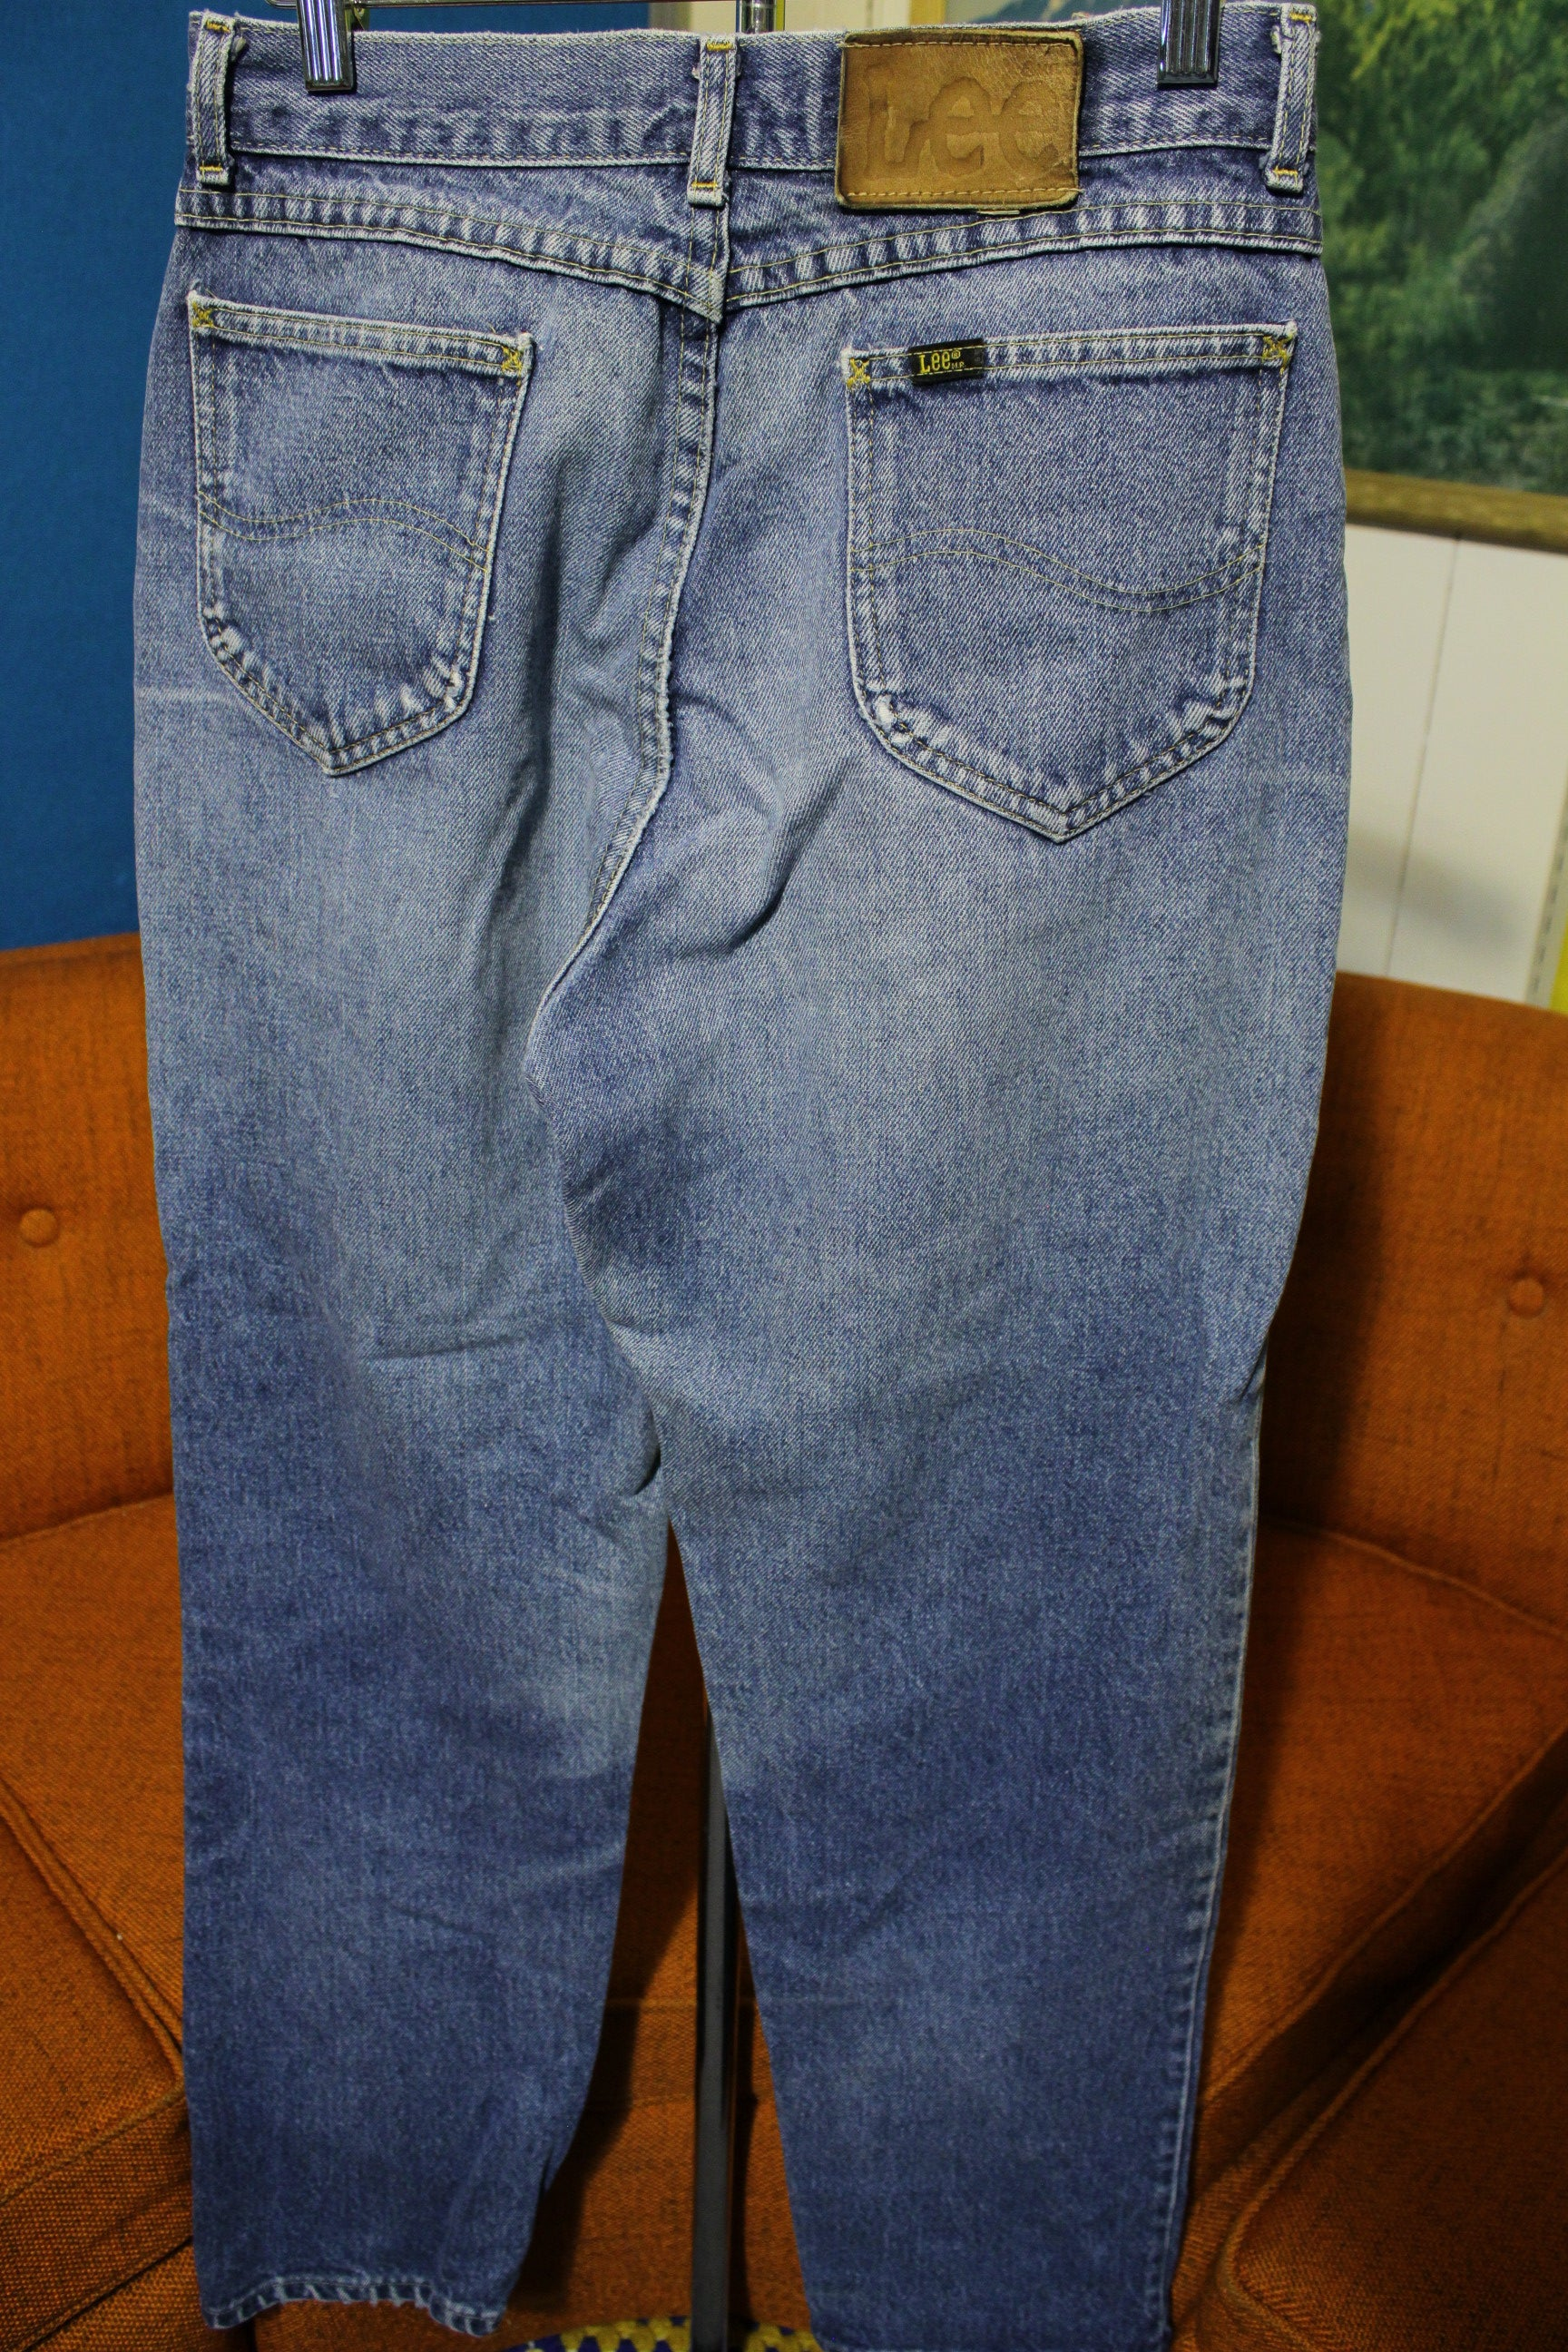 Lee Riders Blue Jeans Vintage Denim 1980's Made In USA 27x30 Grunge Nirvana